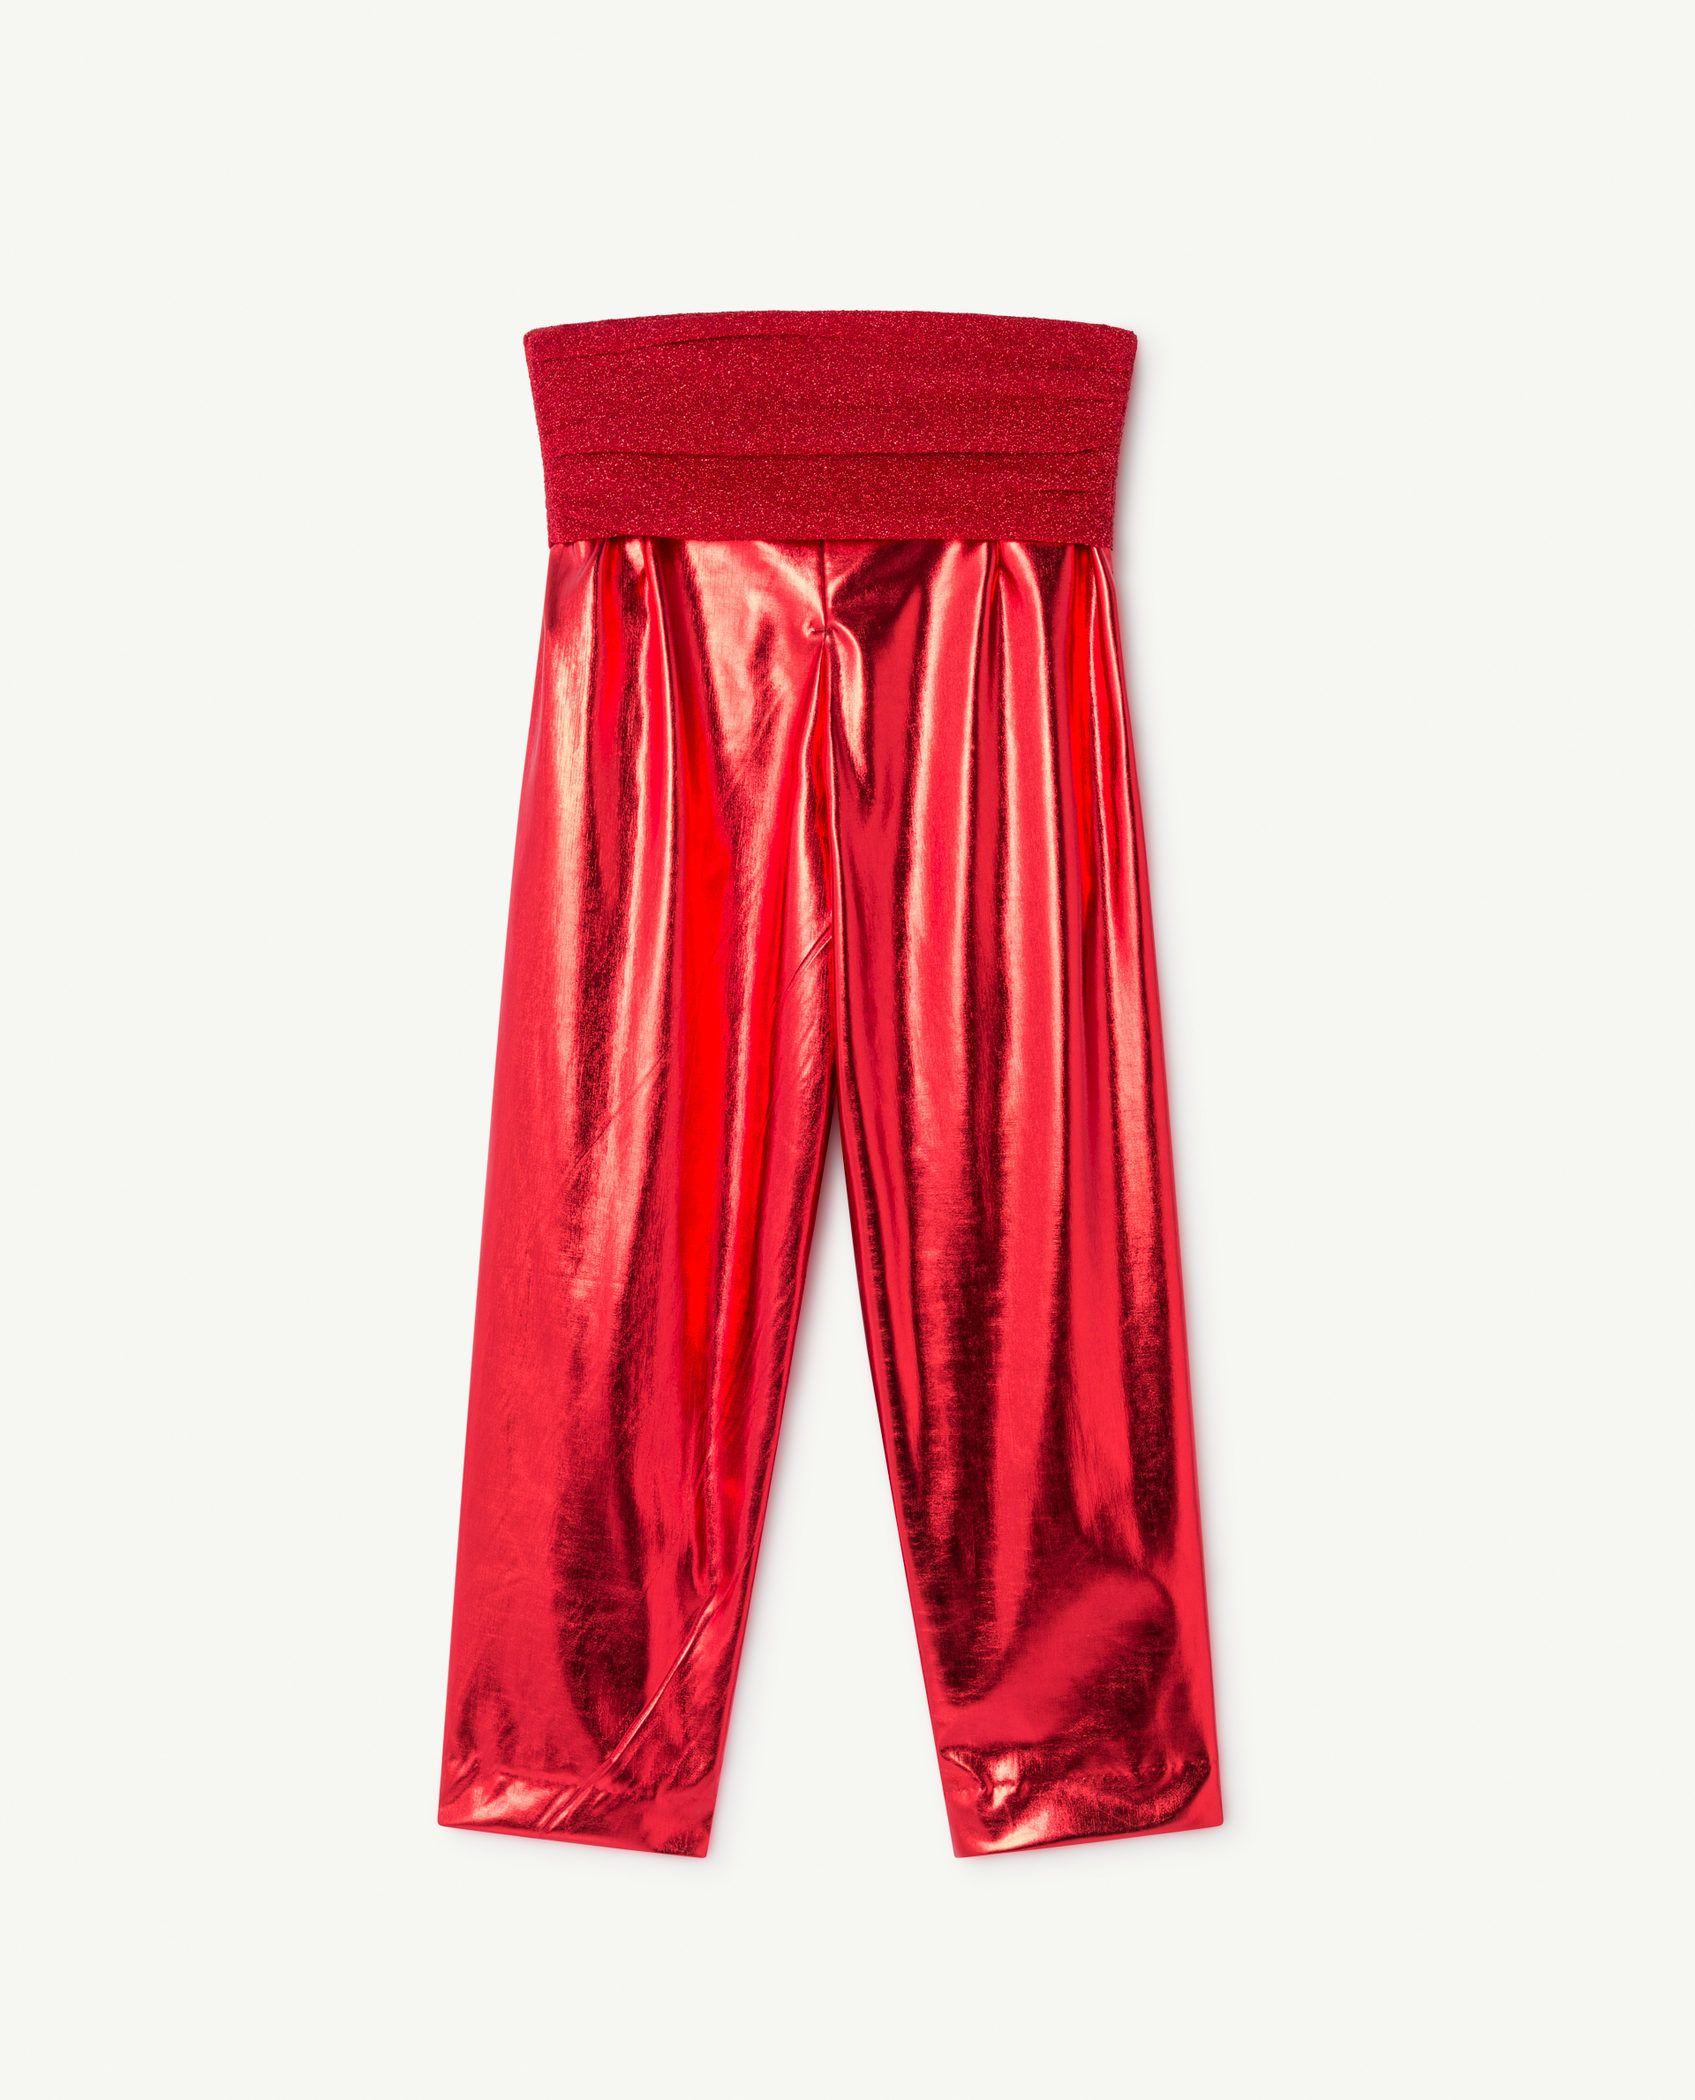 Red Camel Manifesto Trousers img-2